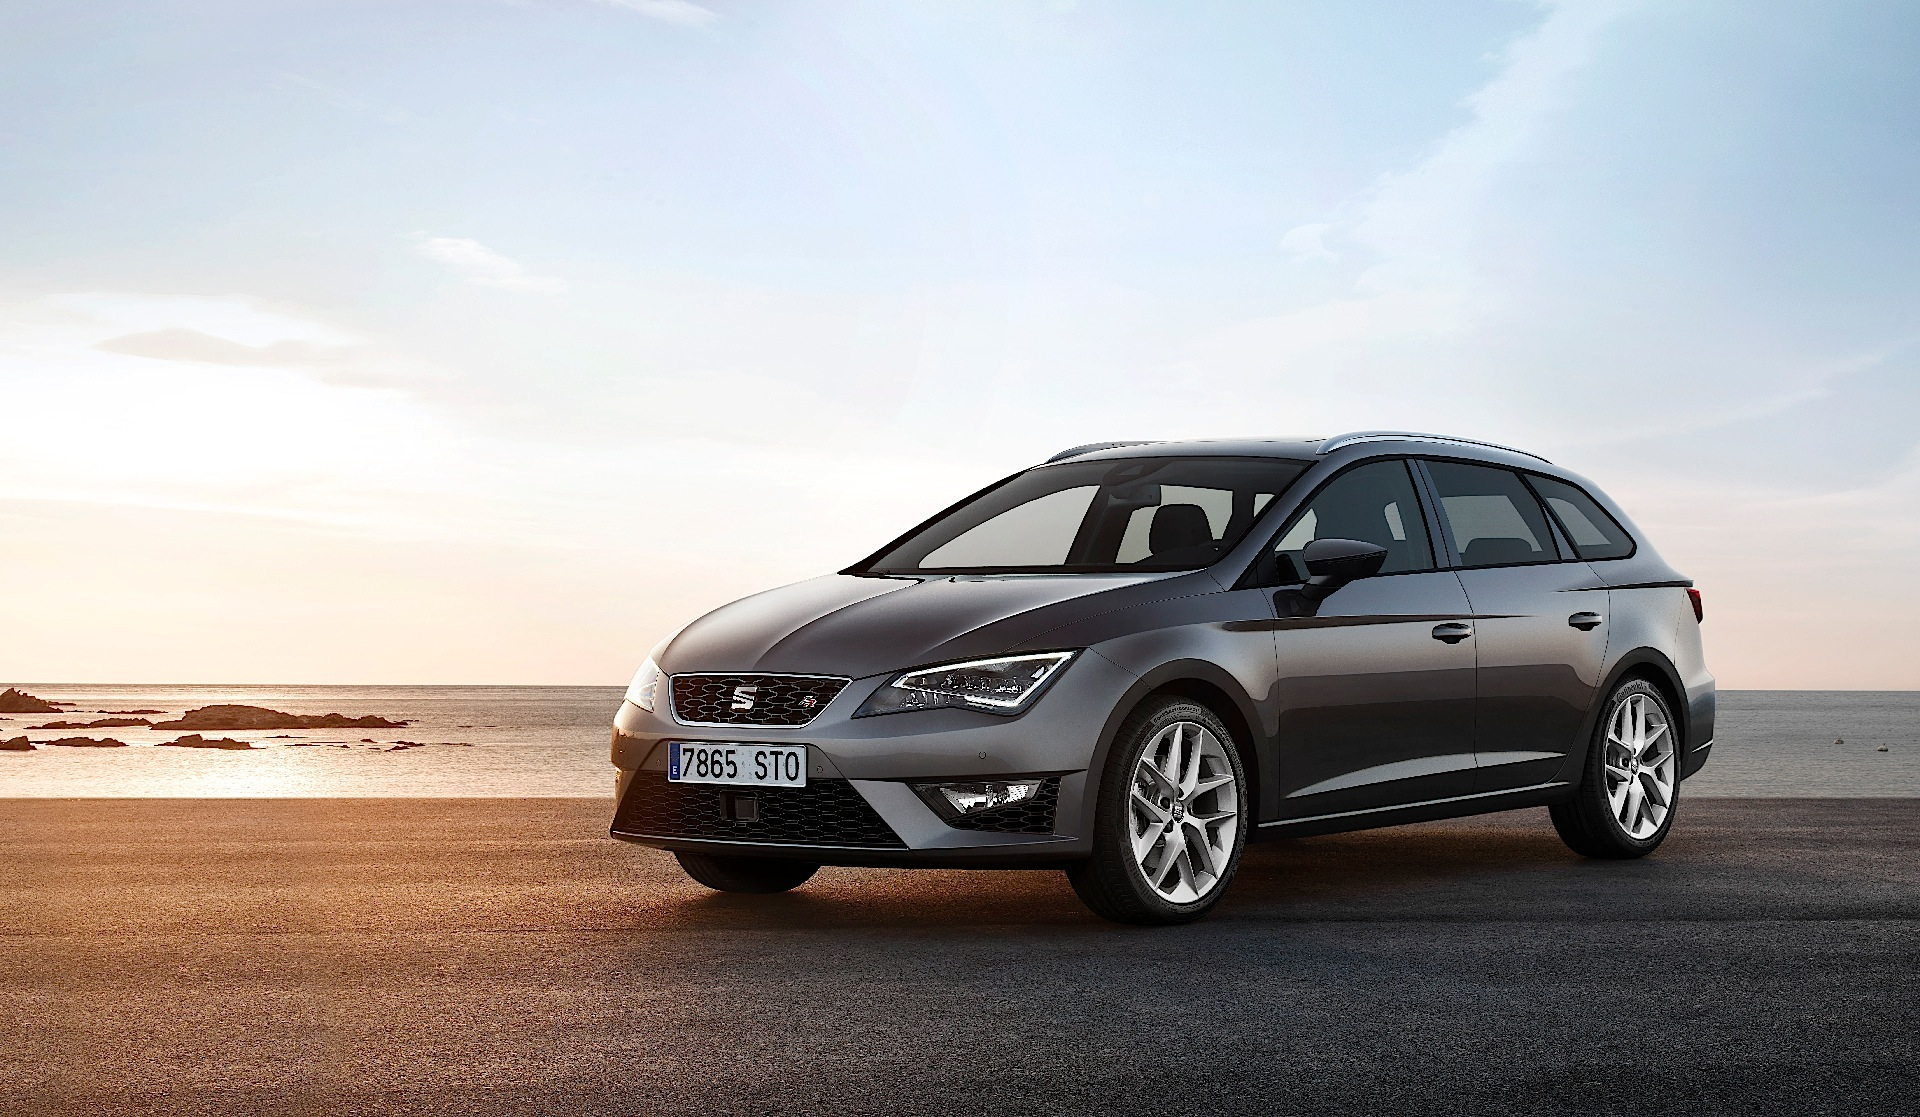 seat leon st estate 2013 2014 2015 2016 autoevolution. Black Bedroom Furniture Sets. Home Design Ideas